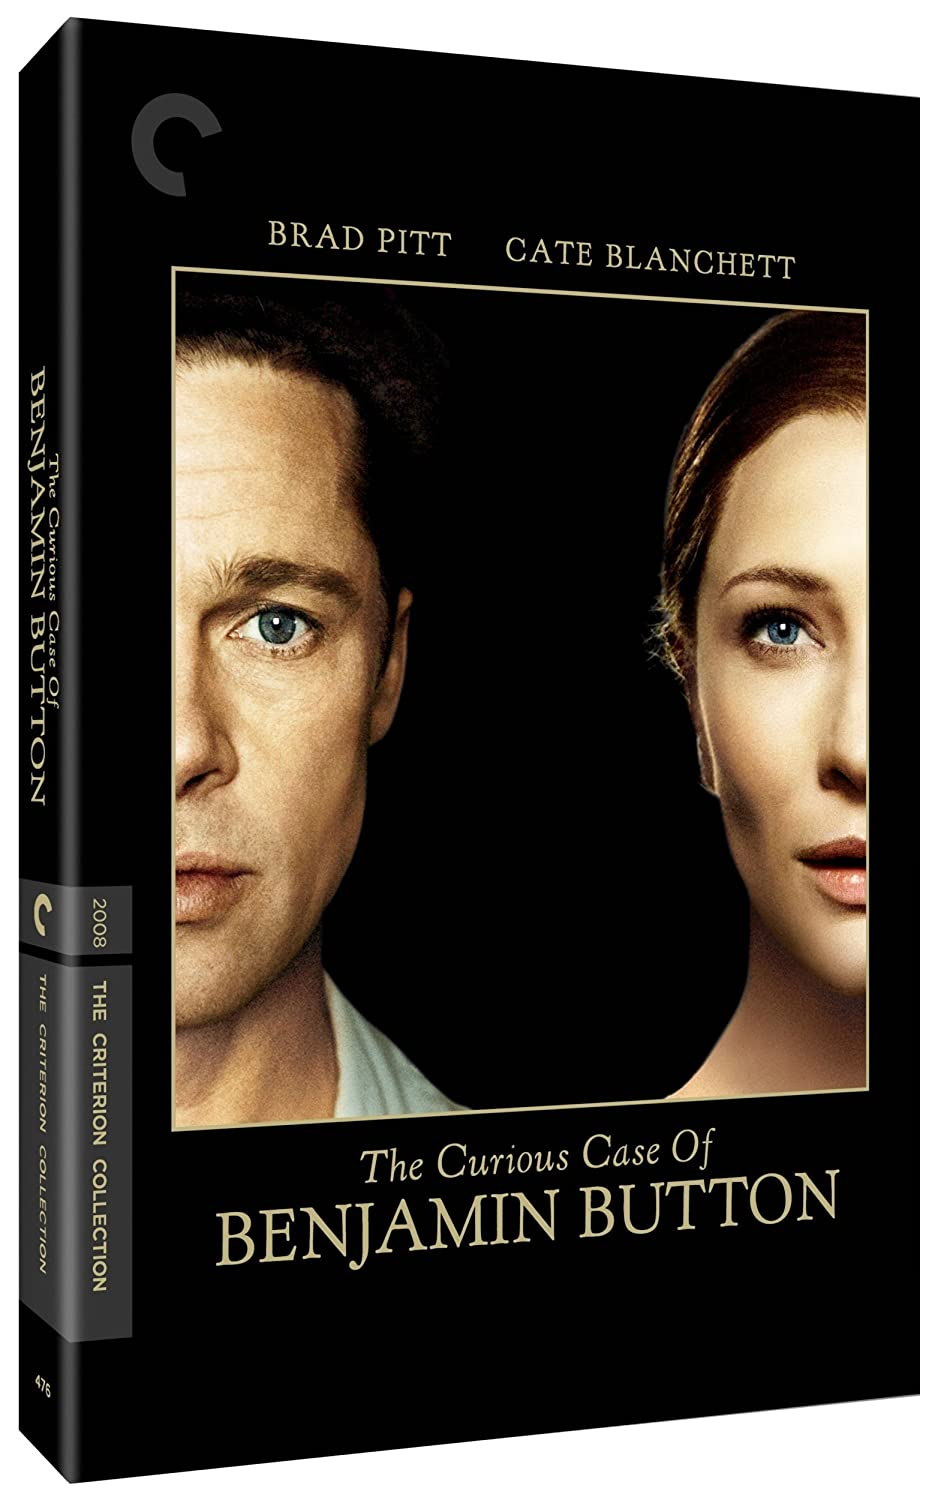 amazon com the curious case of benjamin button the criterion amazon com the curious case of benjamin button the criterion collection brad pitt cate blanchett julia ormond tilda swinton tom everett